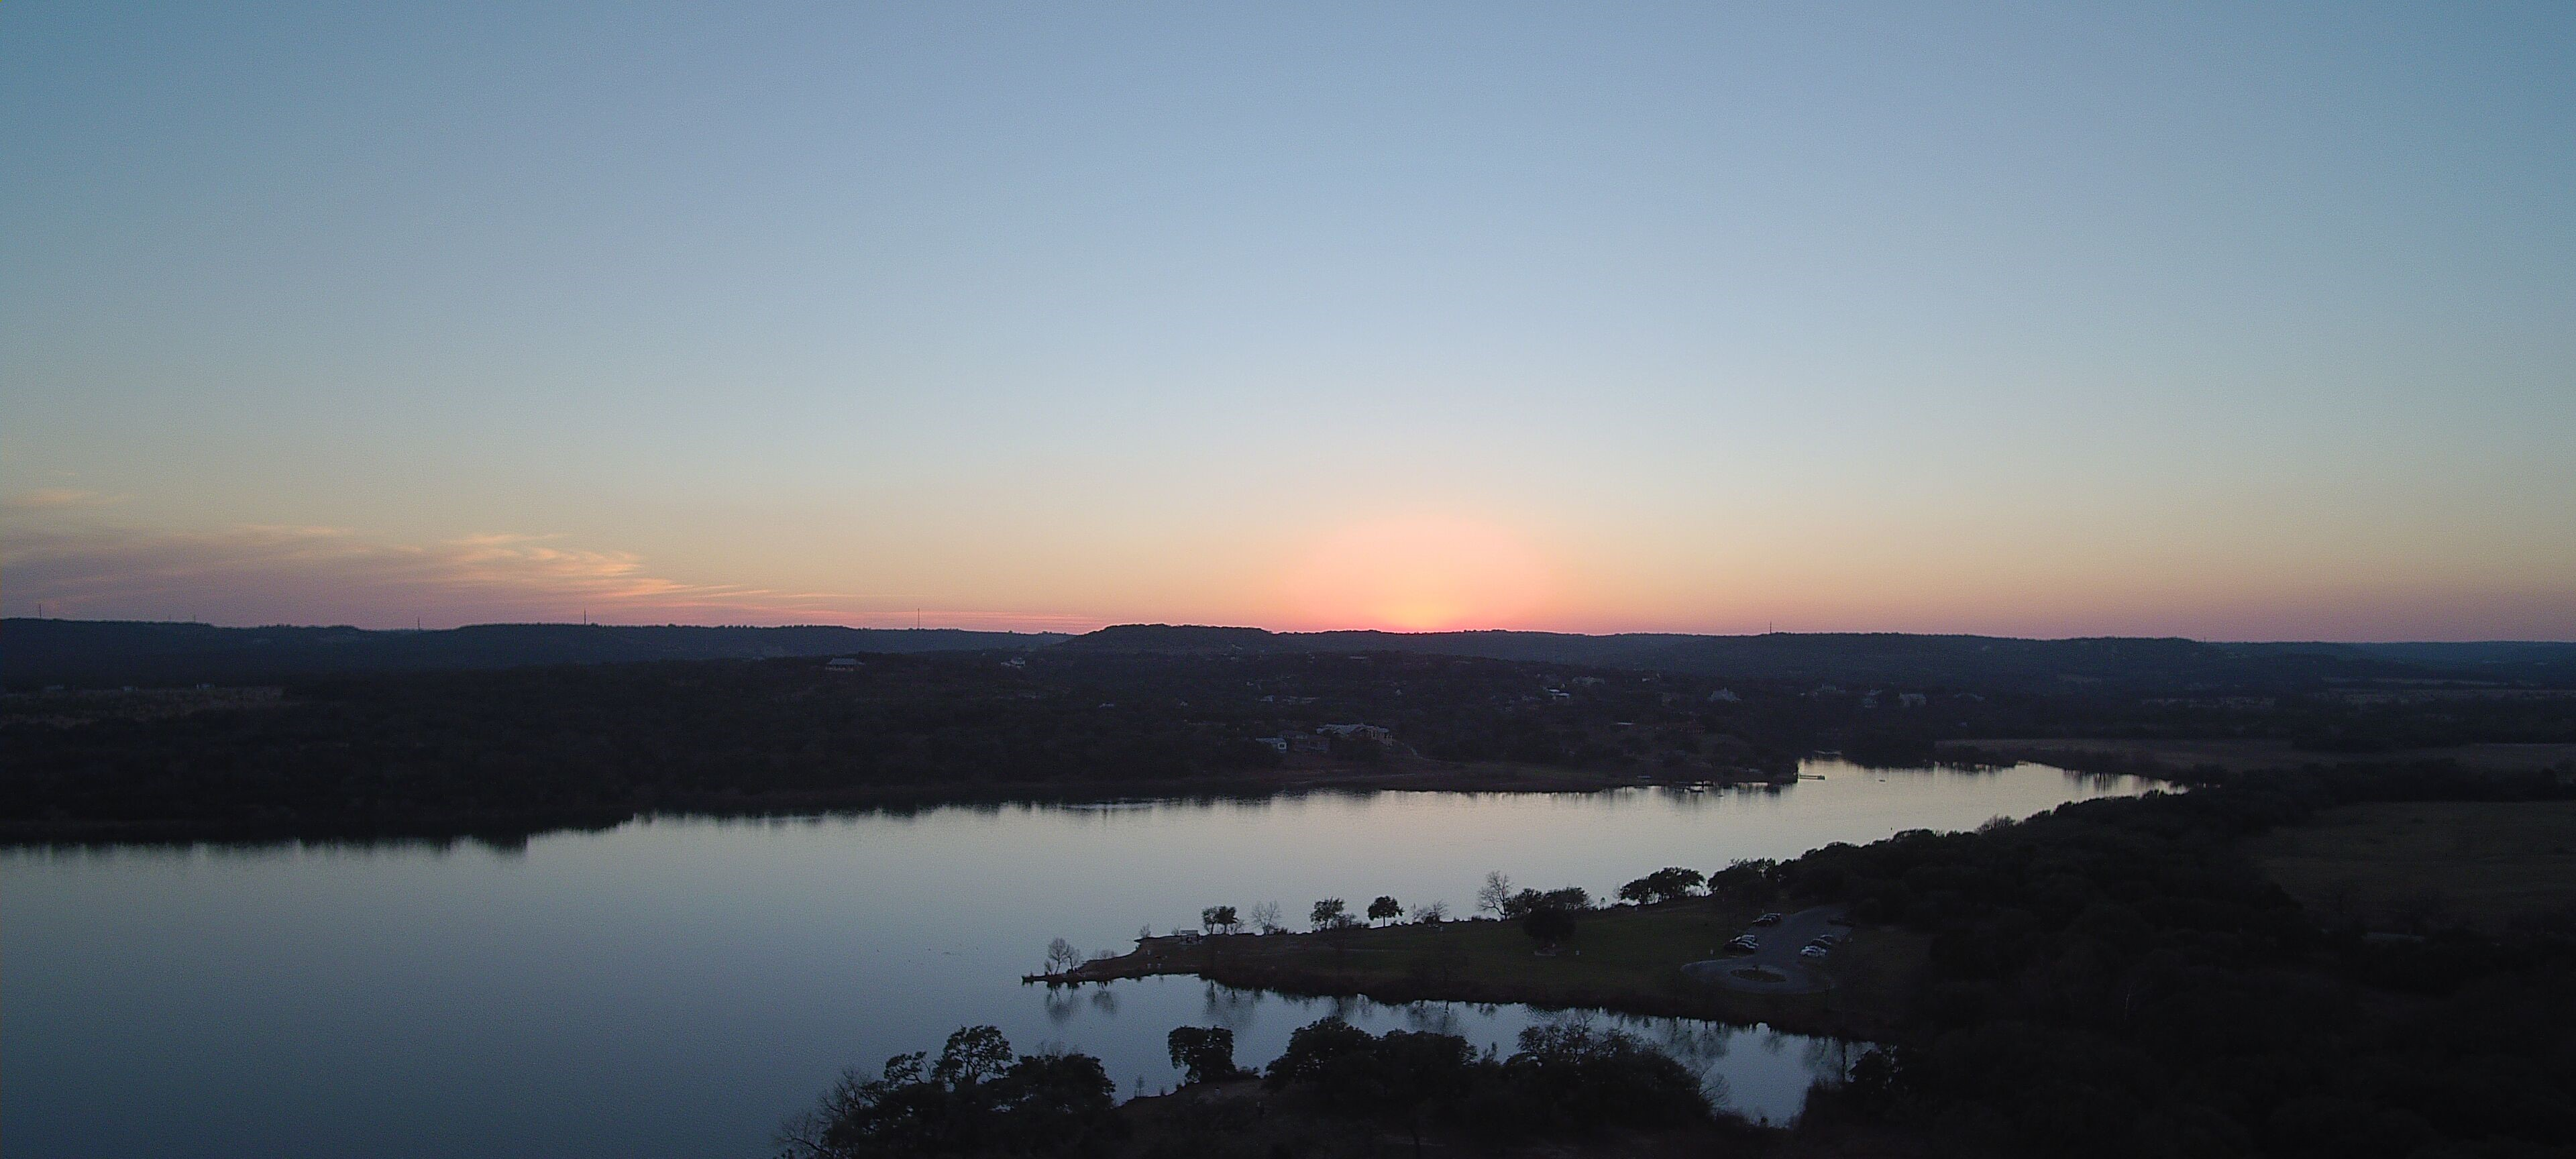 Boerne Sunset 12Dec2016_2_wideview